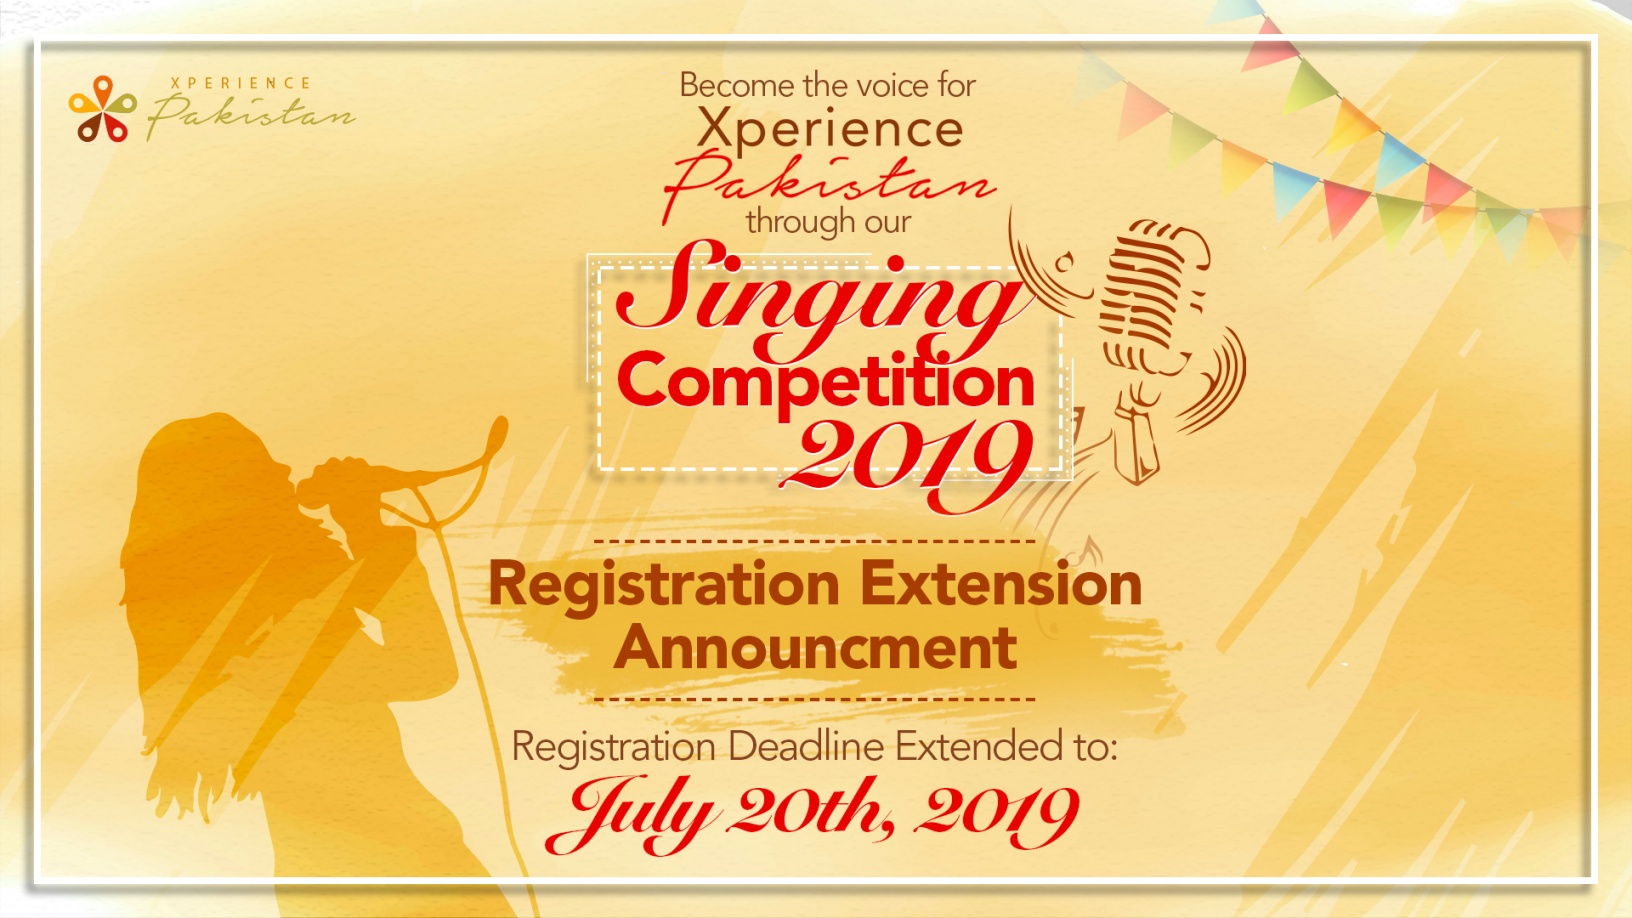 singing competition xperience pakistan